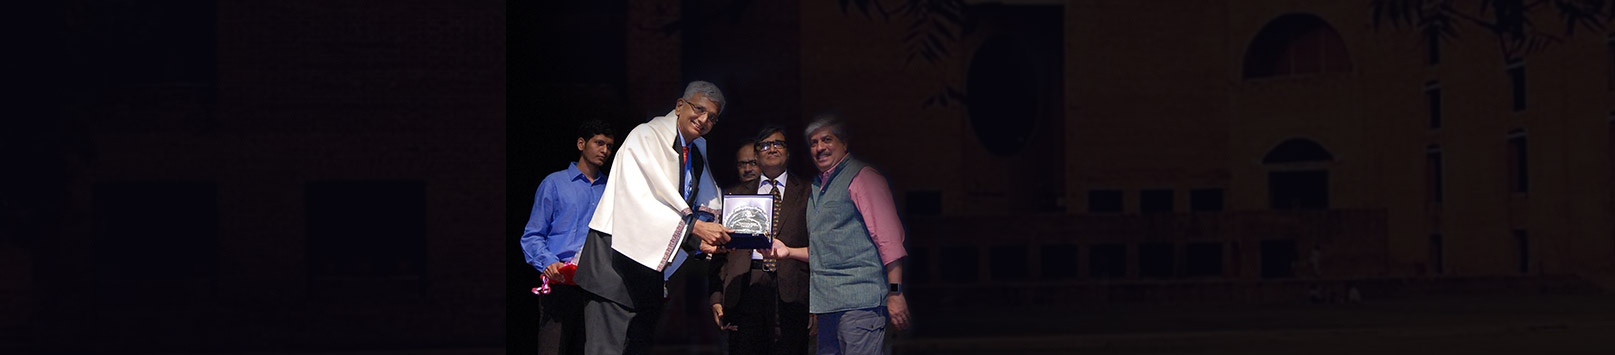 M. G. (Ambi) Parameswaran receiving his Distinguished Alumnus Award 2018 from Shrikrishna Kulkarni, Chairperson IIM Calcutta